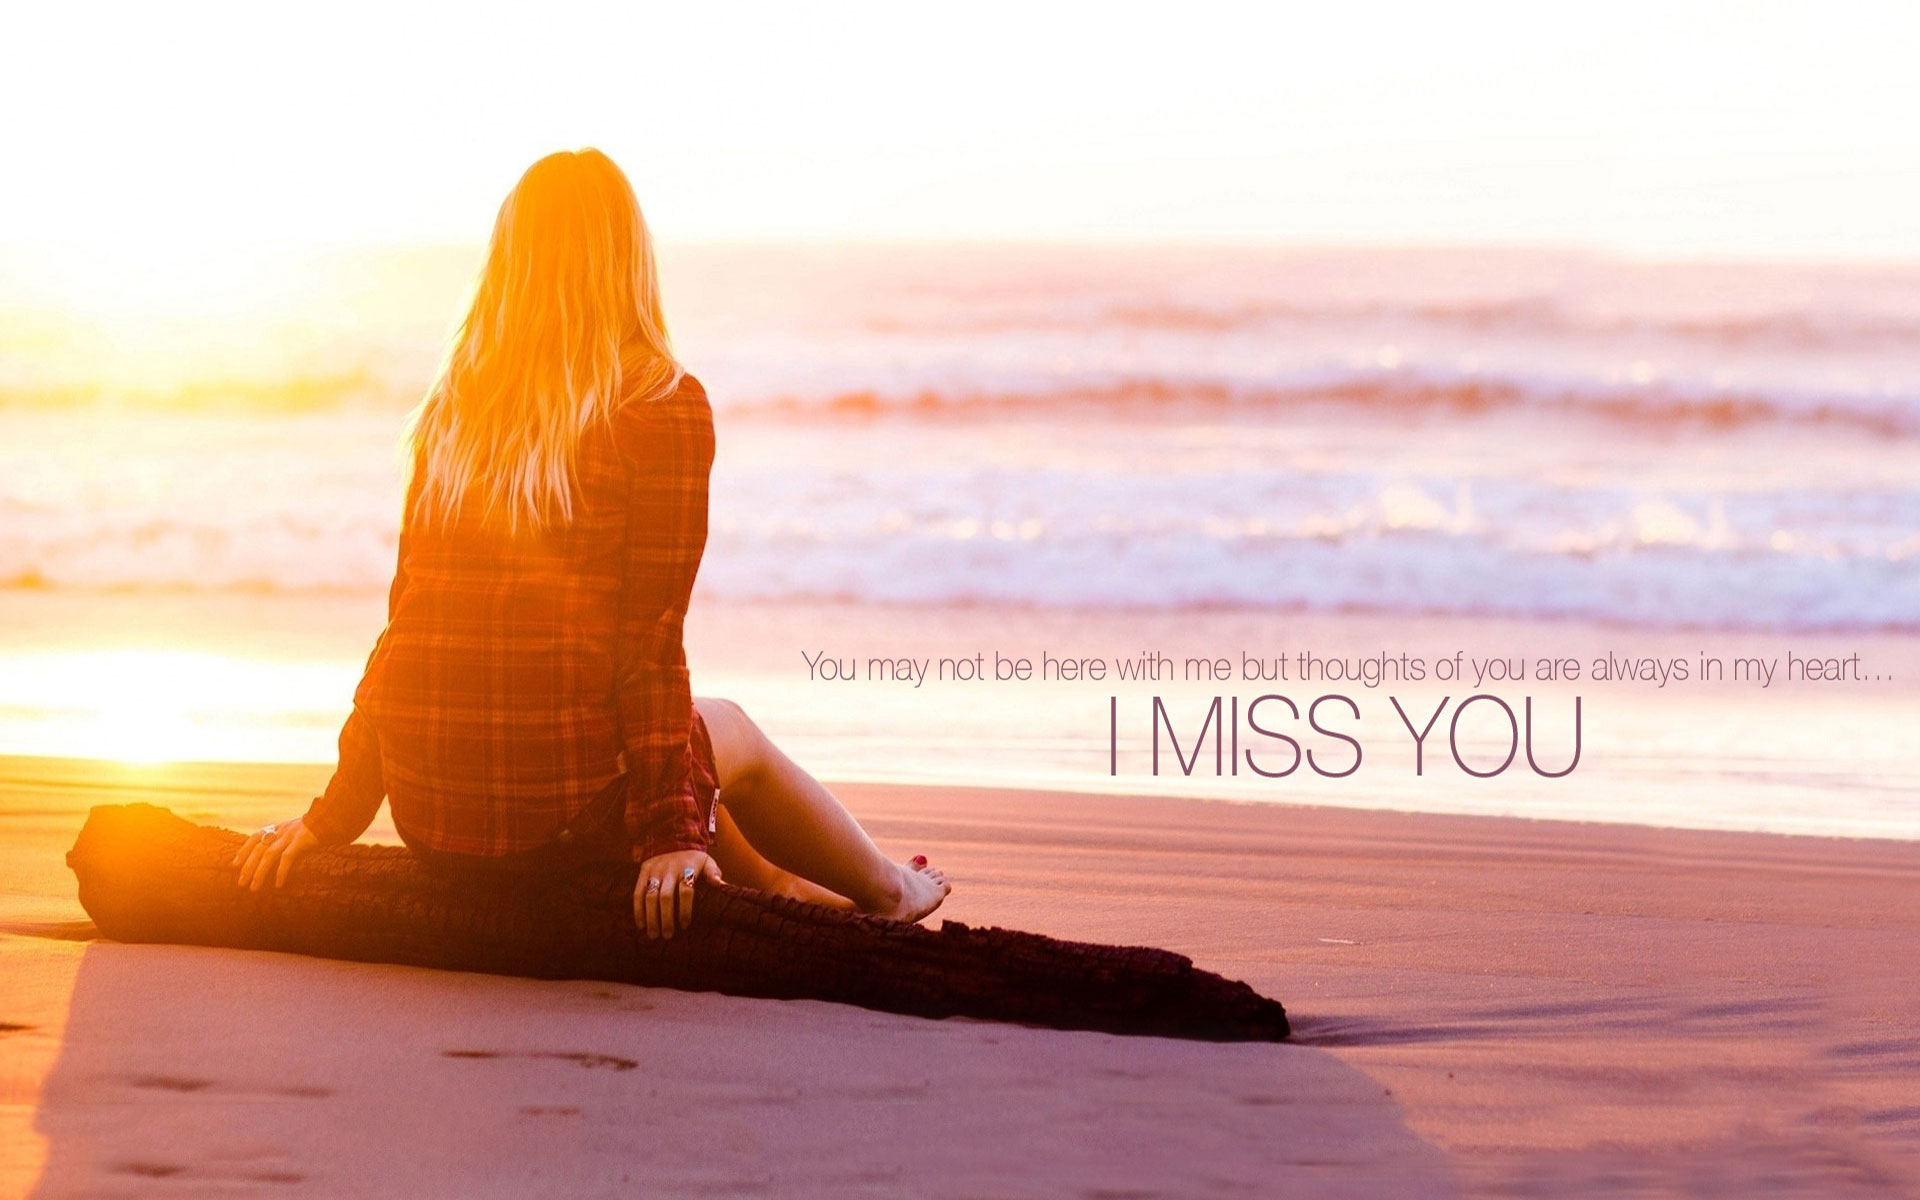 hd i miss you wallpaper for him or herromantic wallpapers